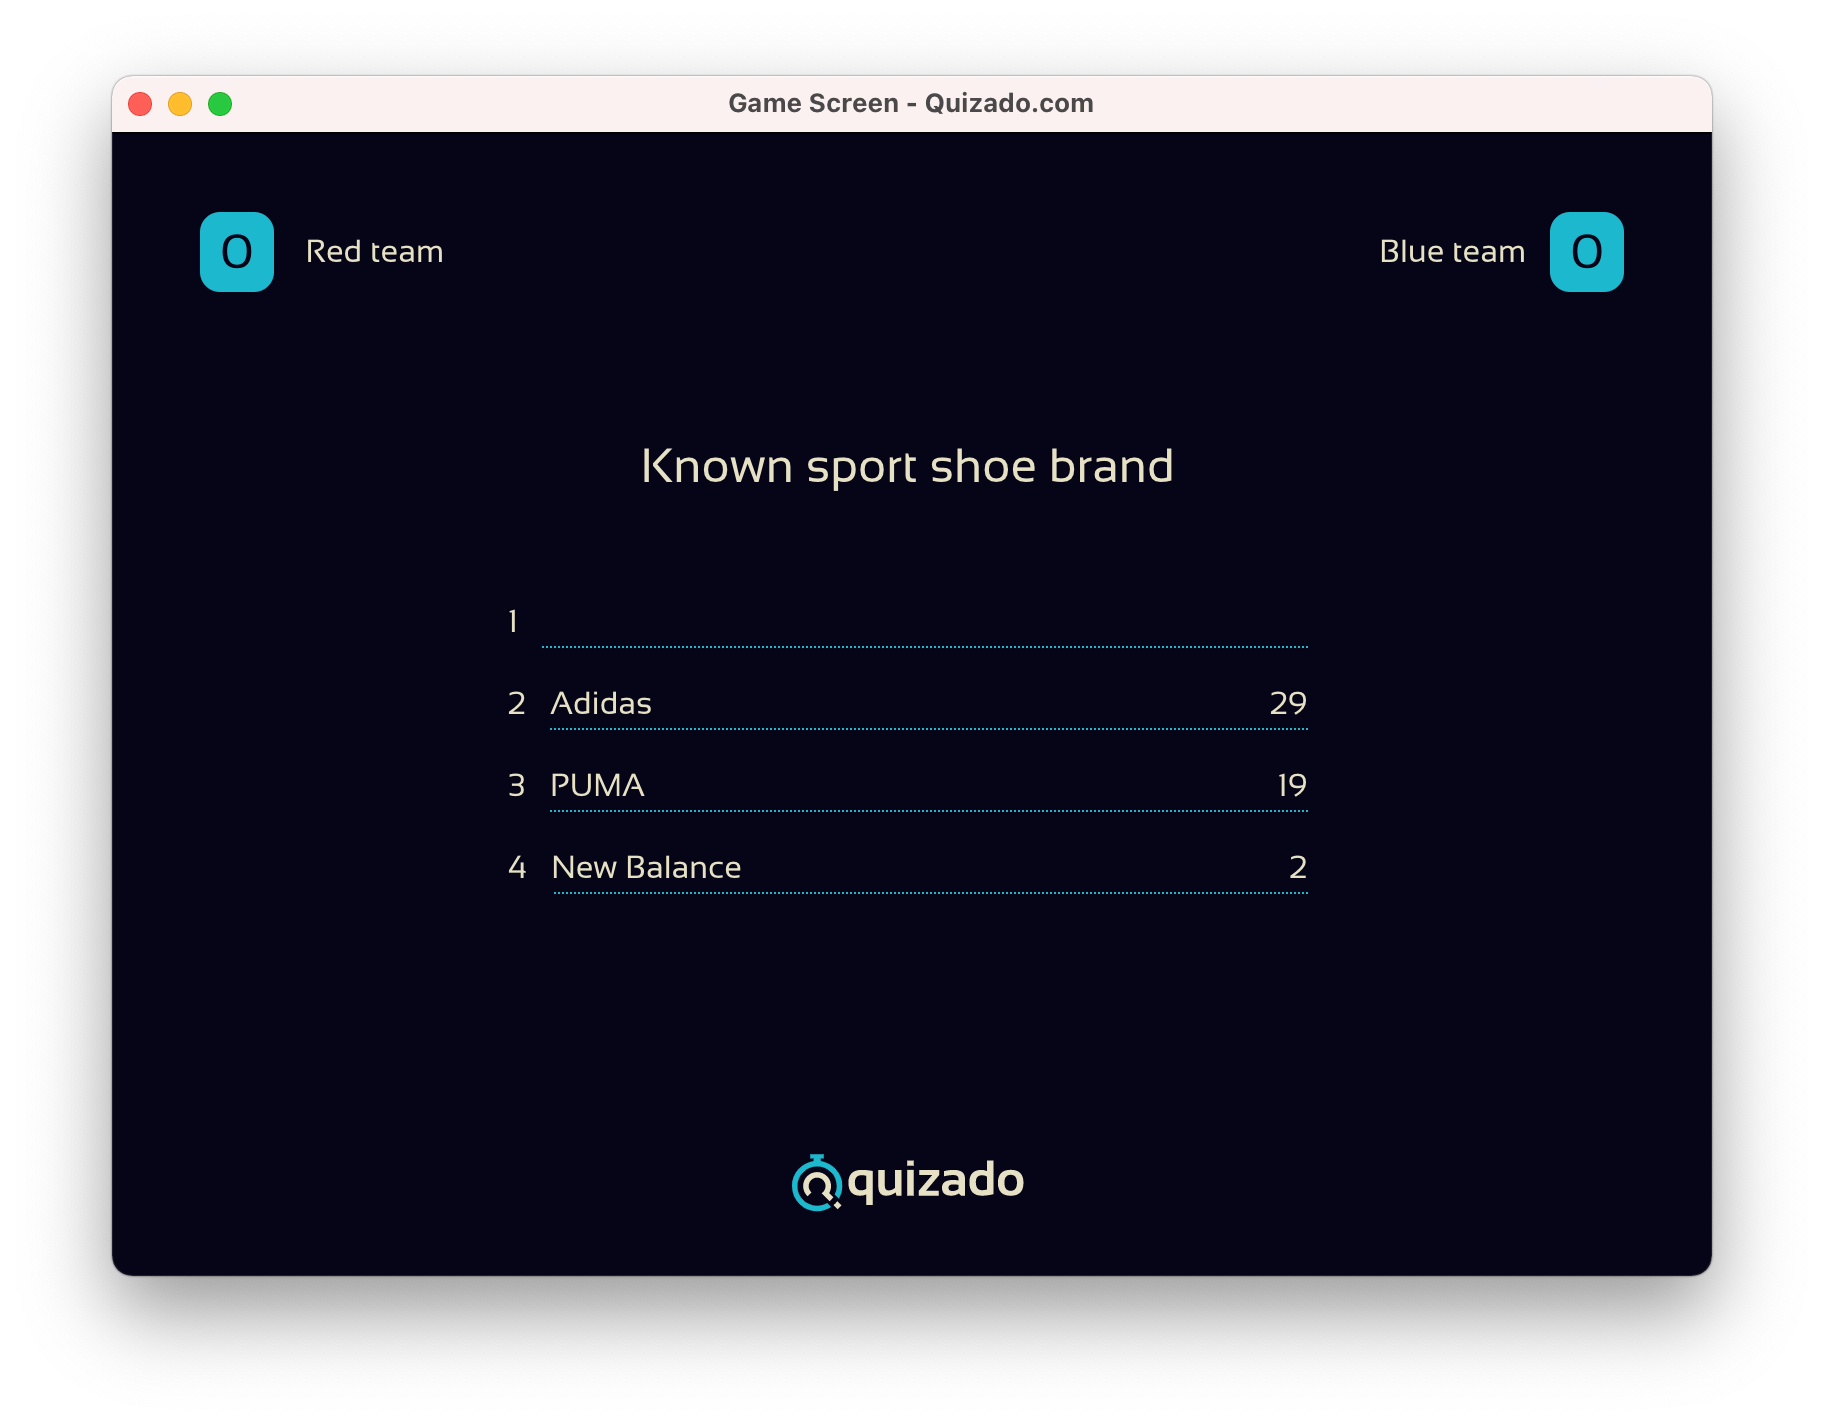 Quizado - Game Screen